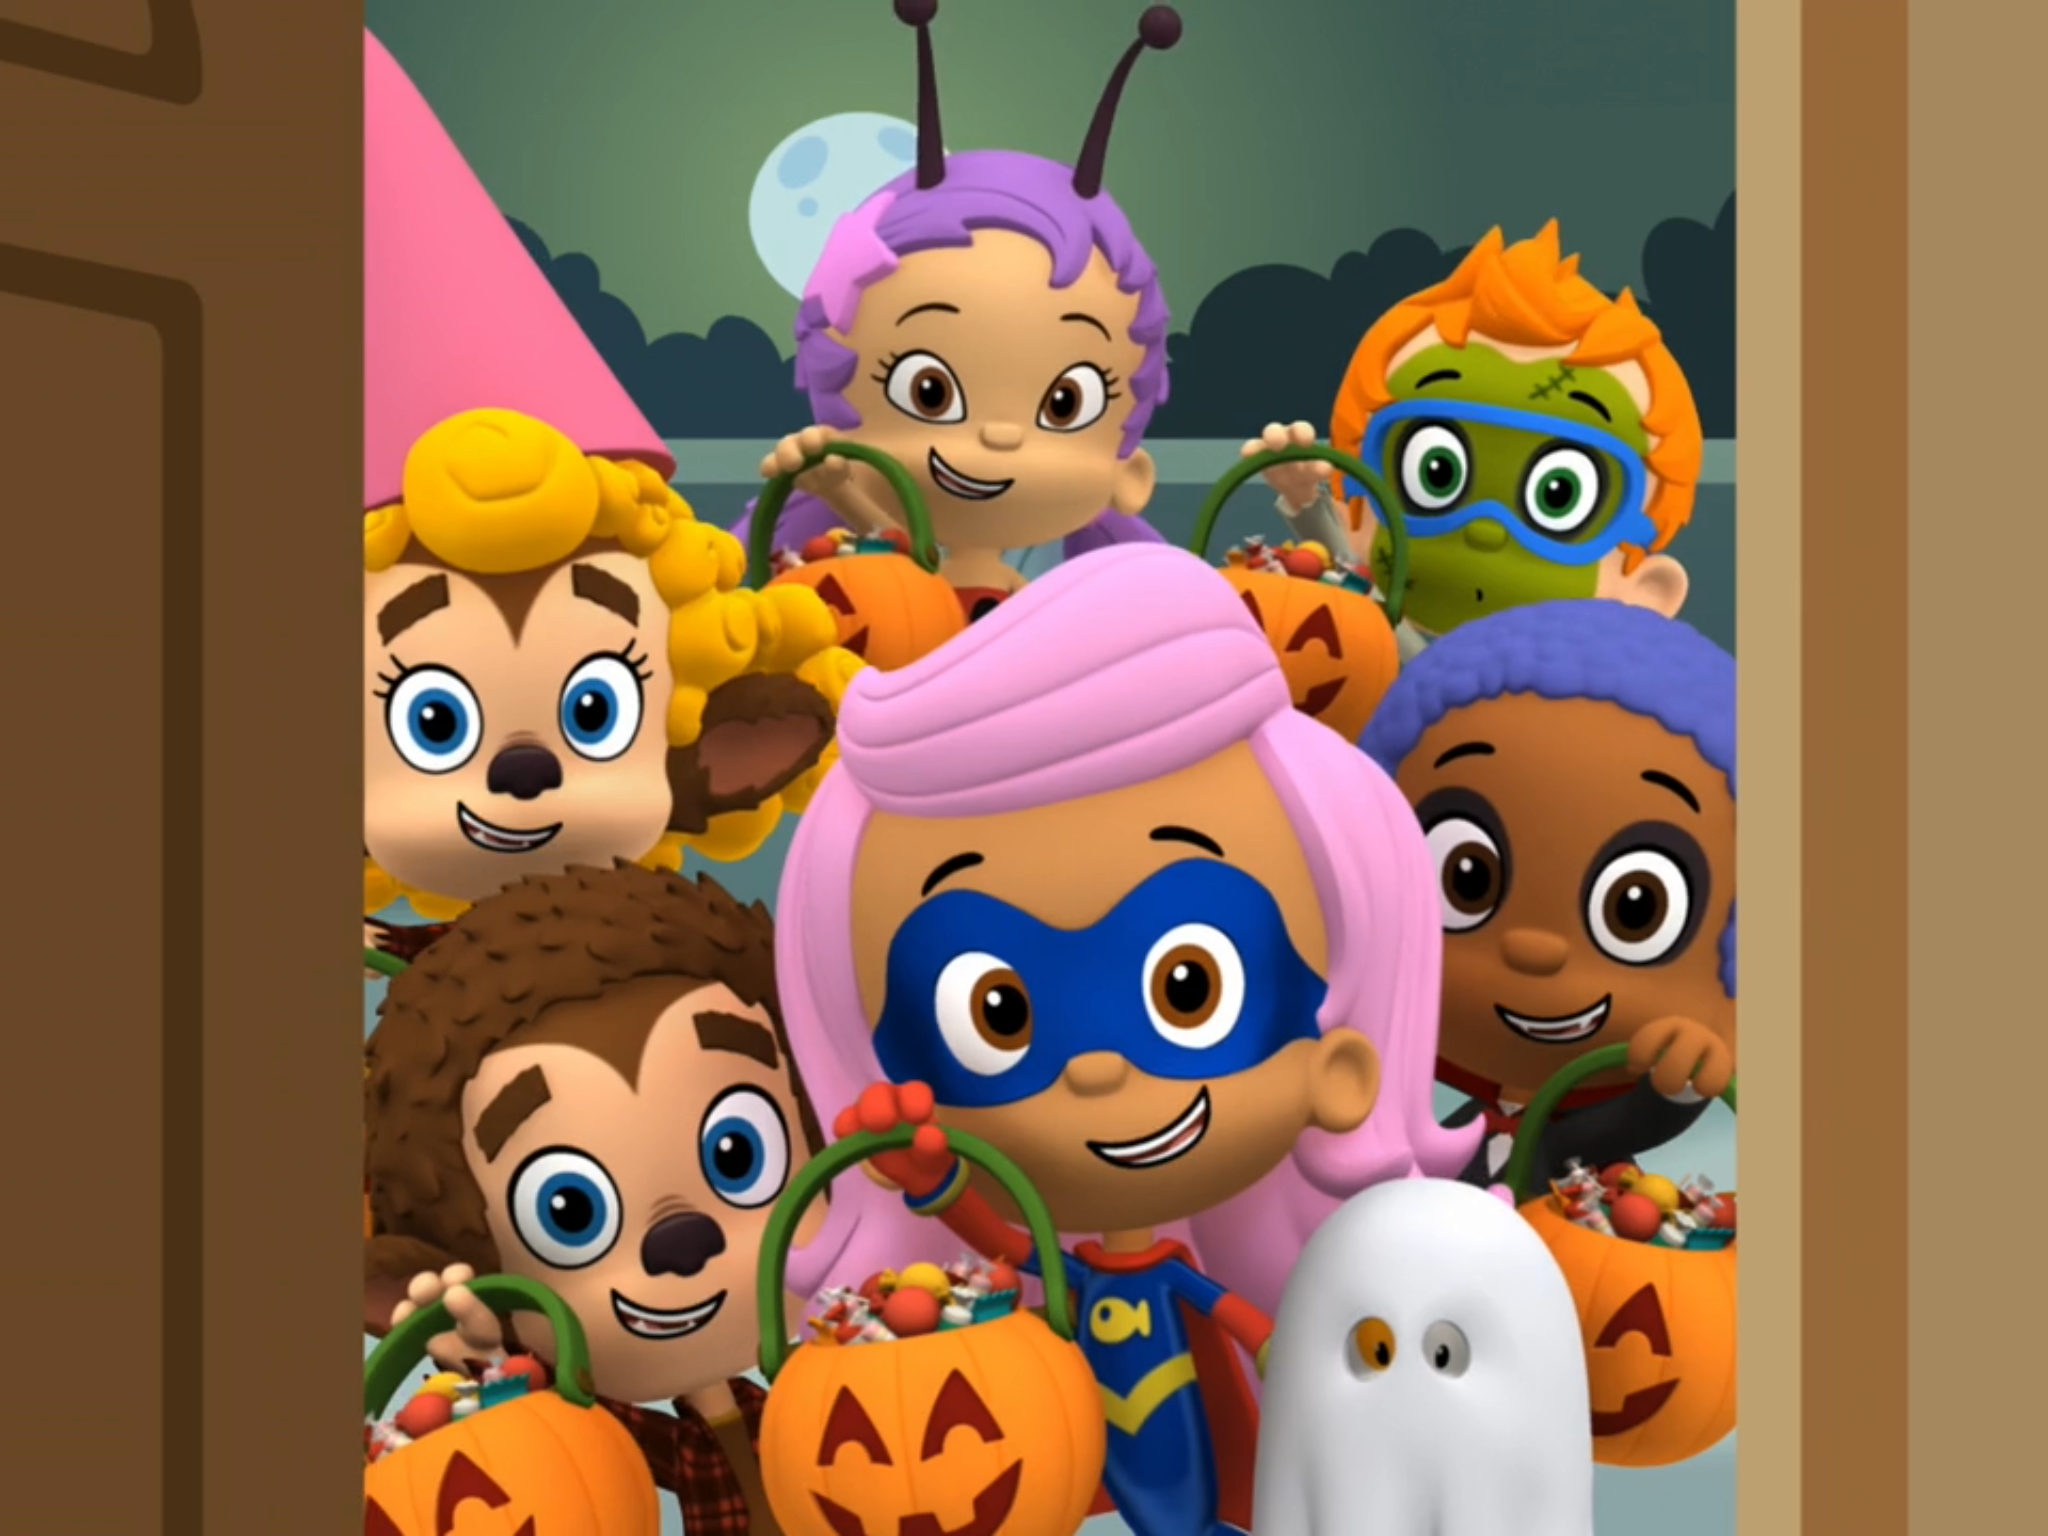 Happy Halloween To The Bubble Guppies To Have A Spooky Fun Bubble Guppies Happy Halloween Mario Characters